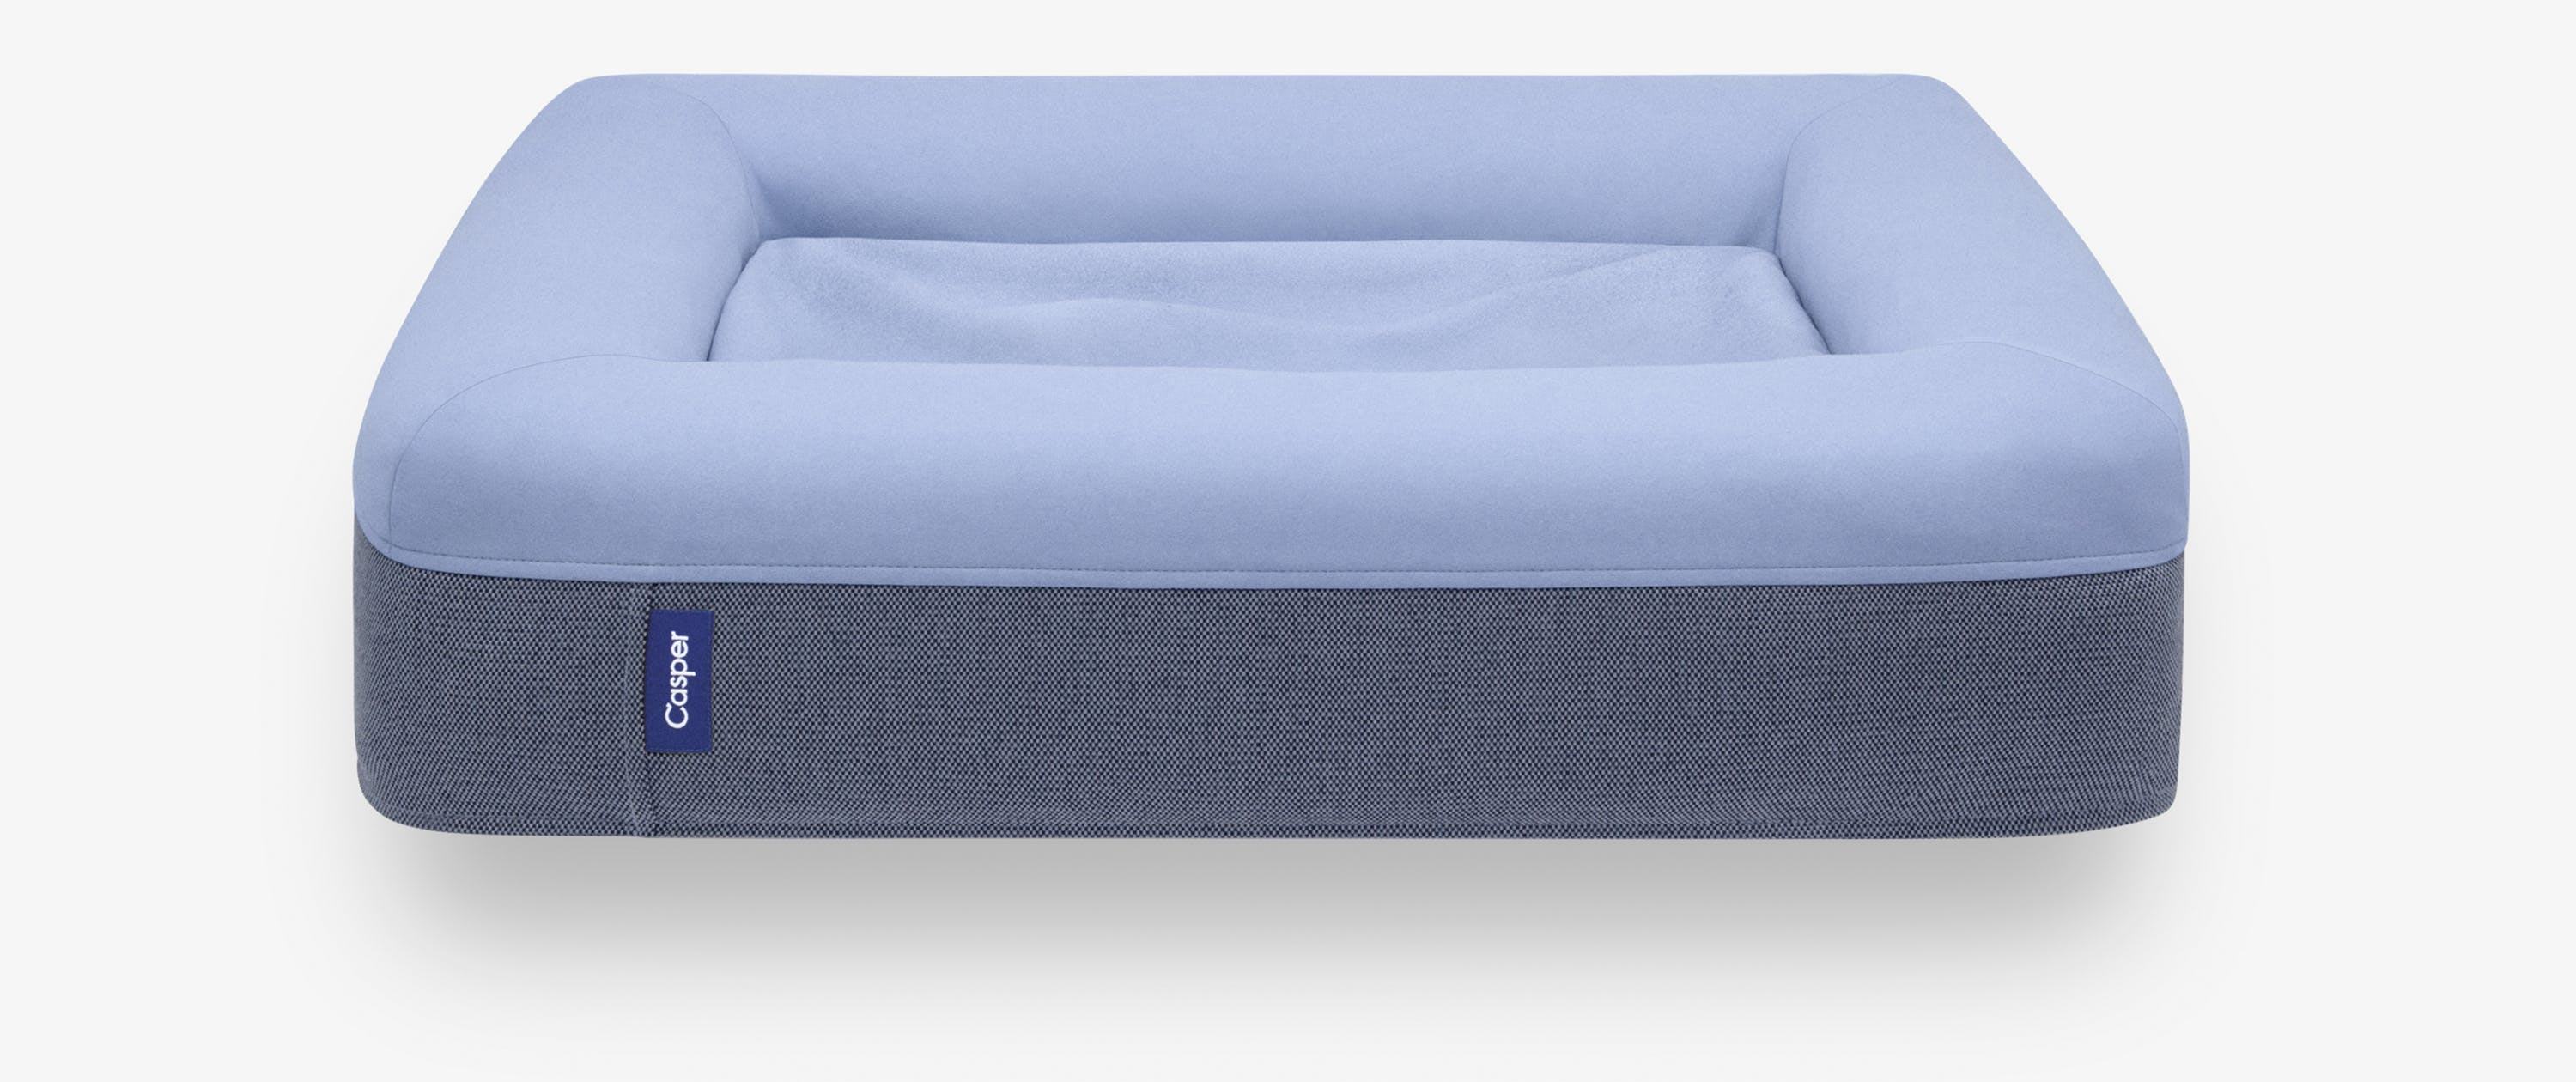 The blue Casper Dog Mattress